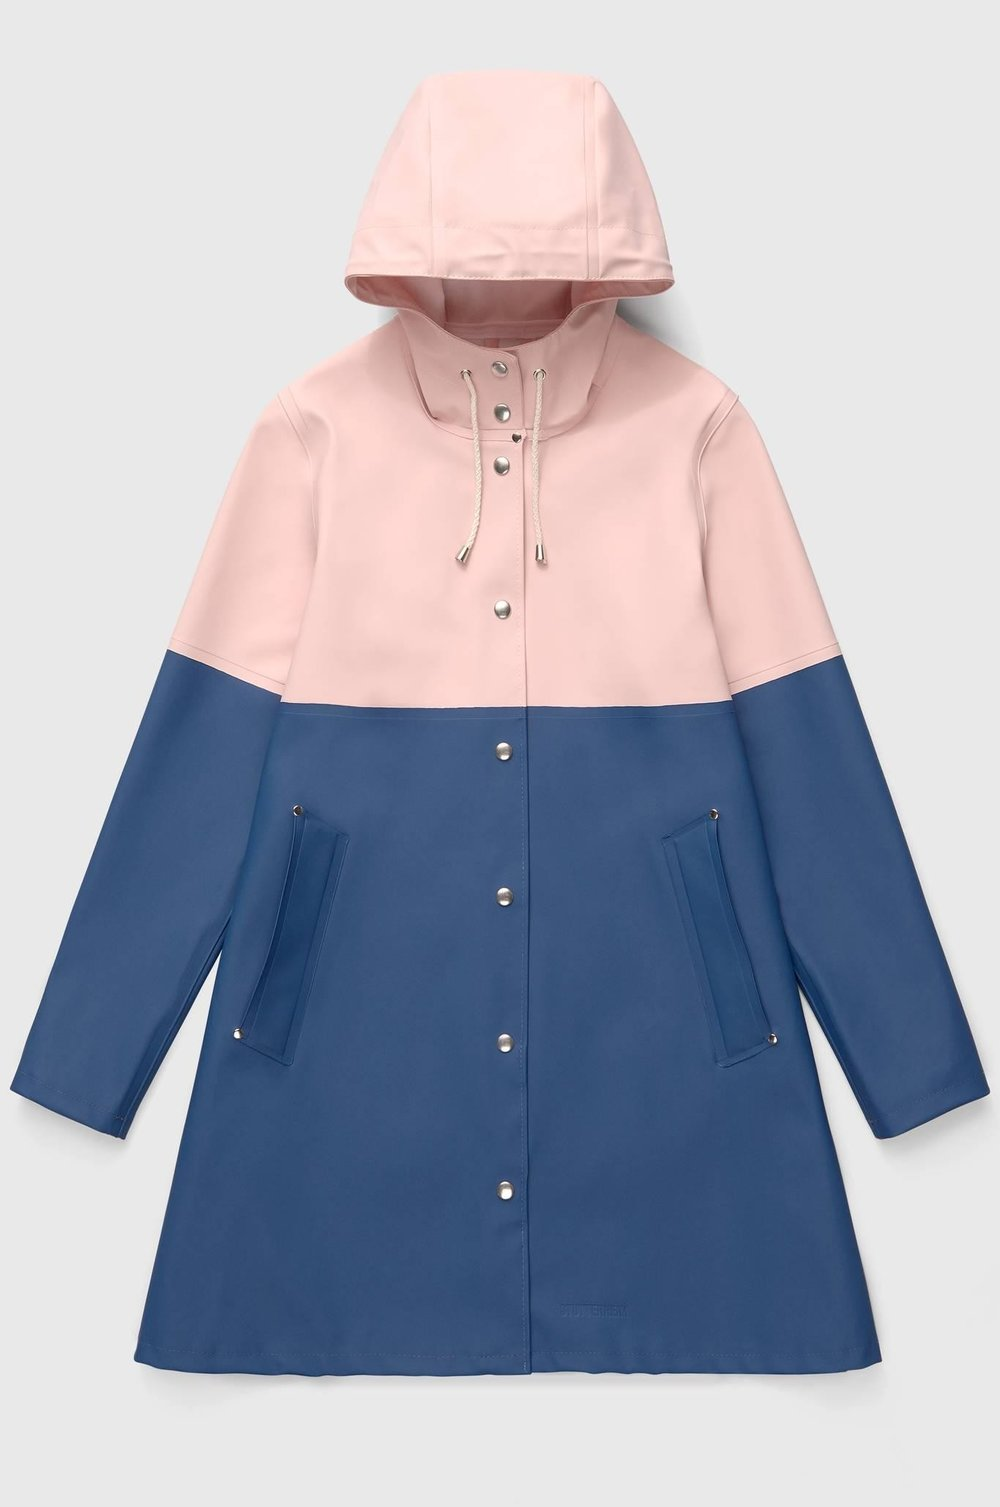 downsized_stutterheim_aw18_woman_coat_mosebacke_blocked_pale_pink_indigo_product_front.jpg